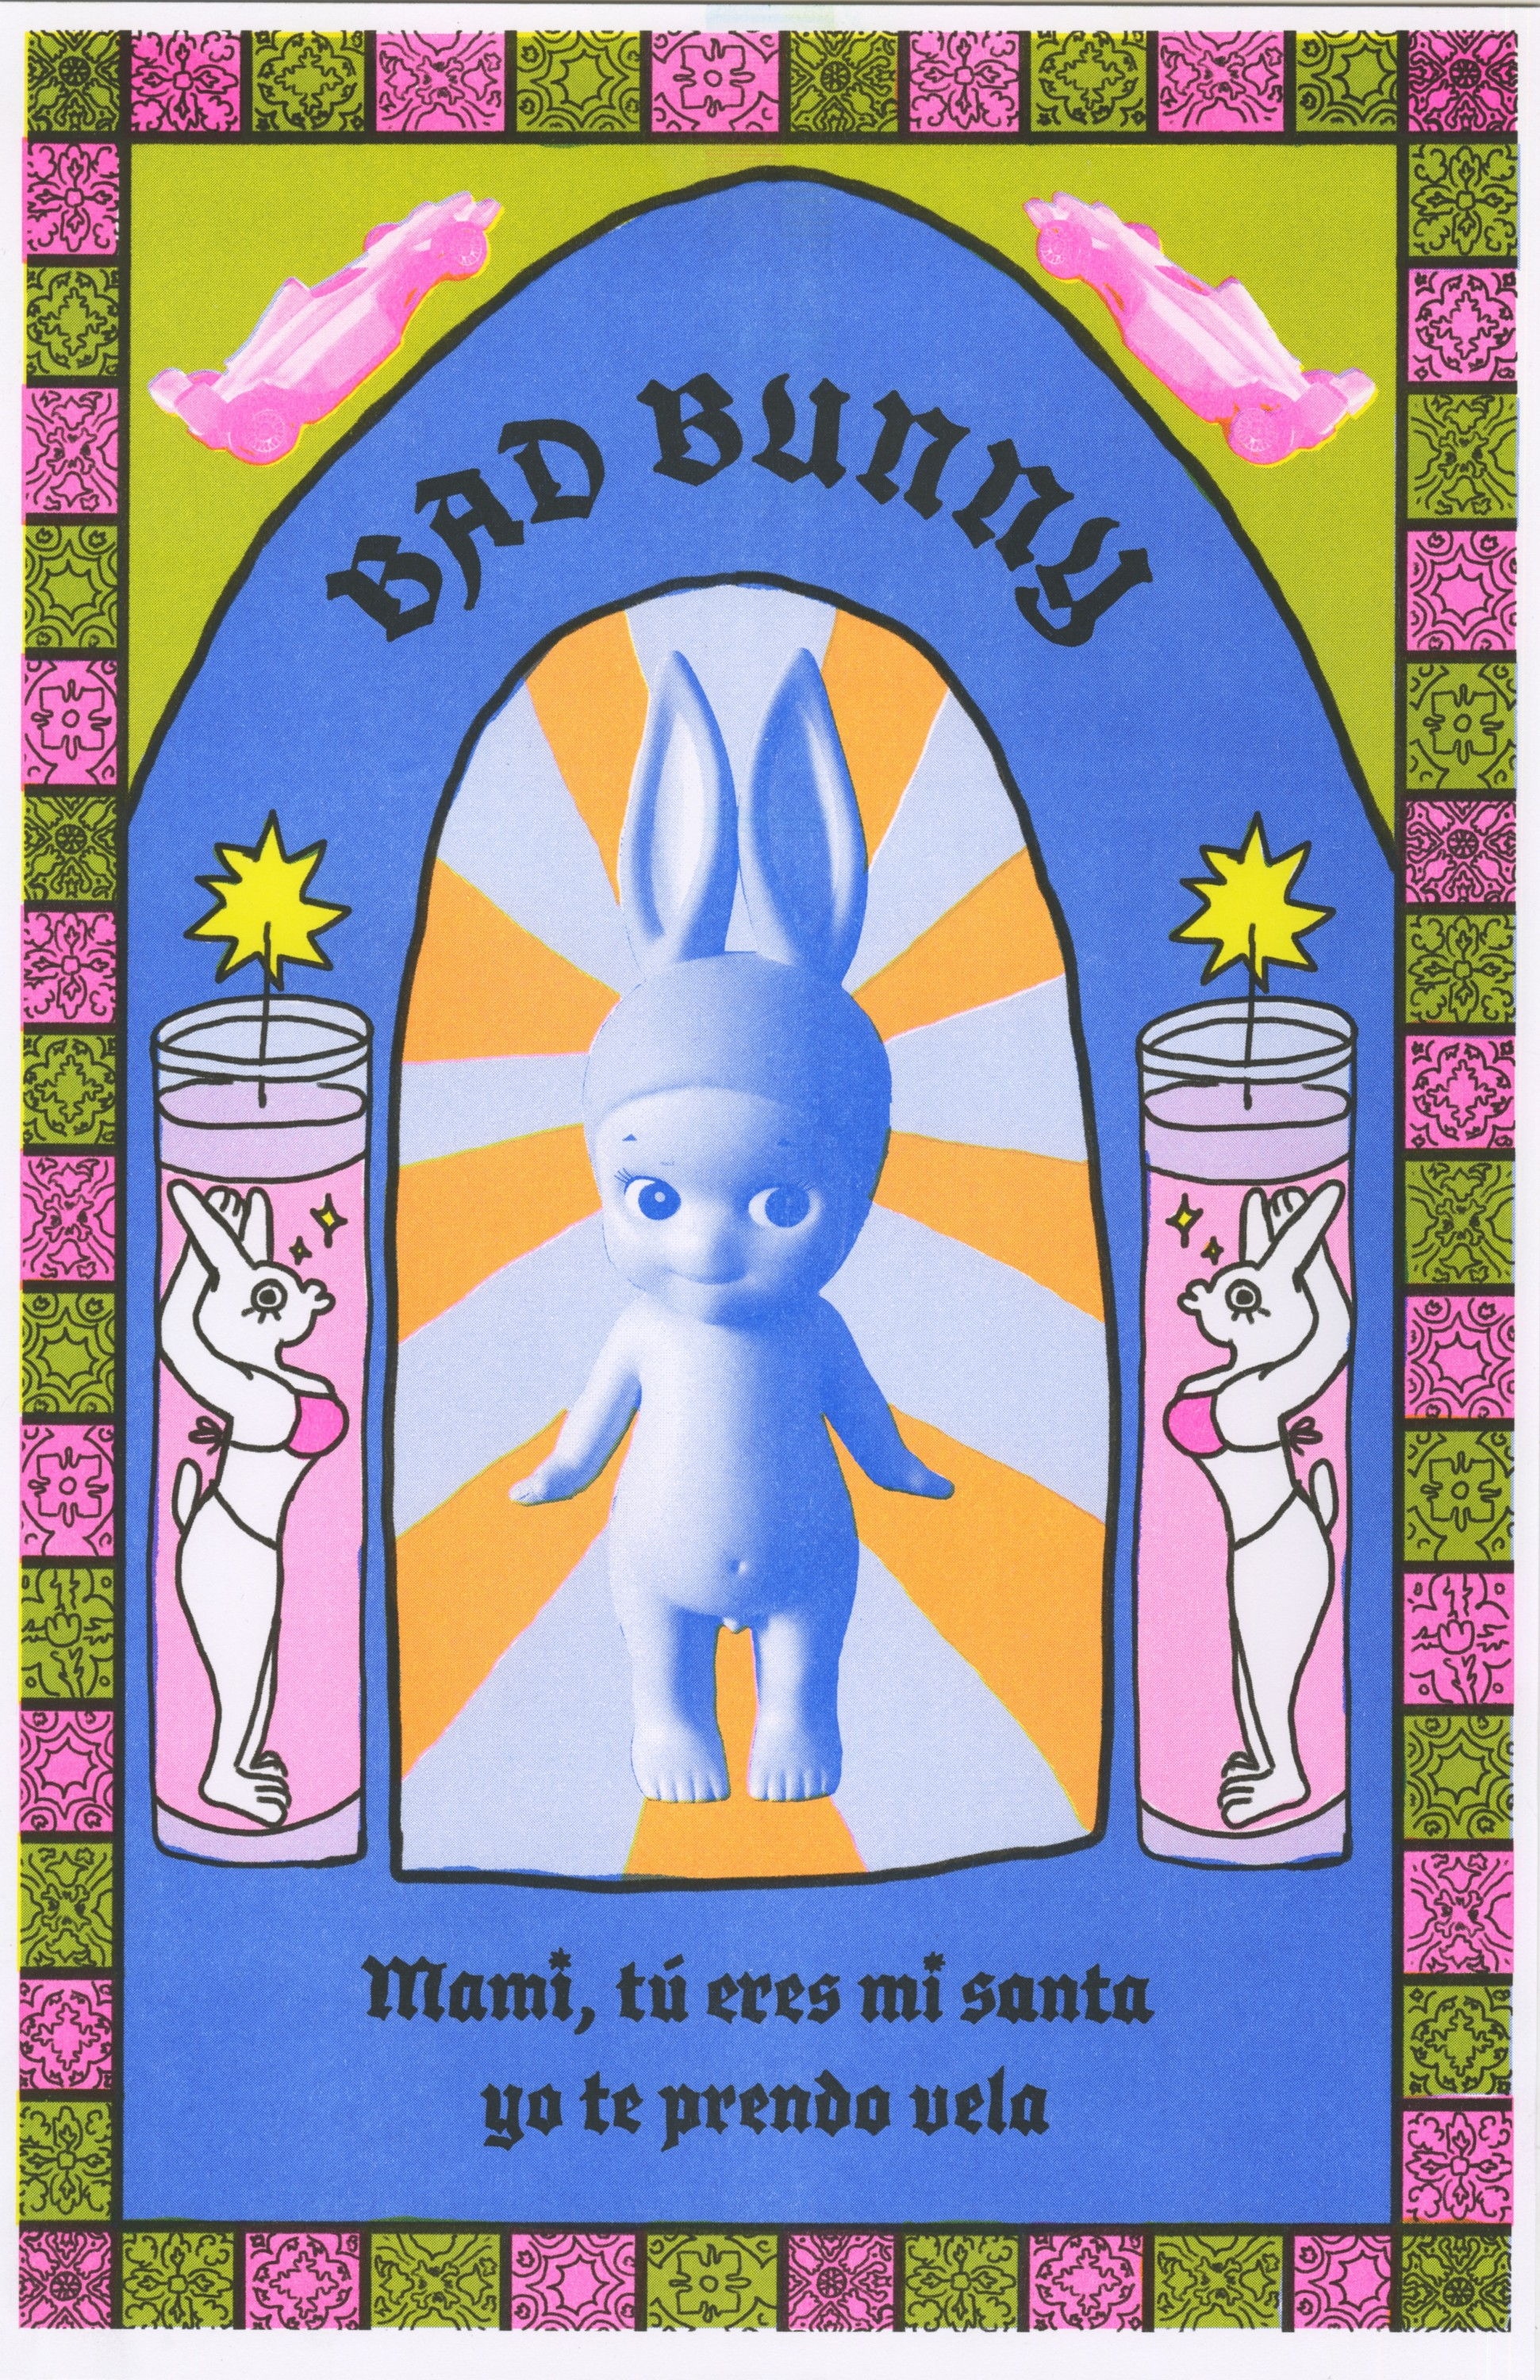 """The whole image is surrounded by green and pink puerto rican style ceramic tiles. At the top is an arch that has two pink hotwheels cars on either side. Underneath the arch there is text in a gothic font that reads """"Bad Bunny"""" under the text is"""